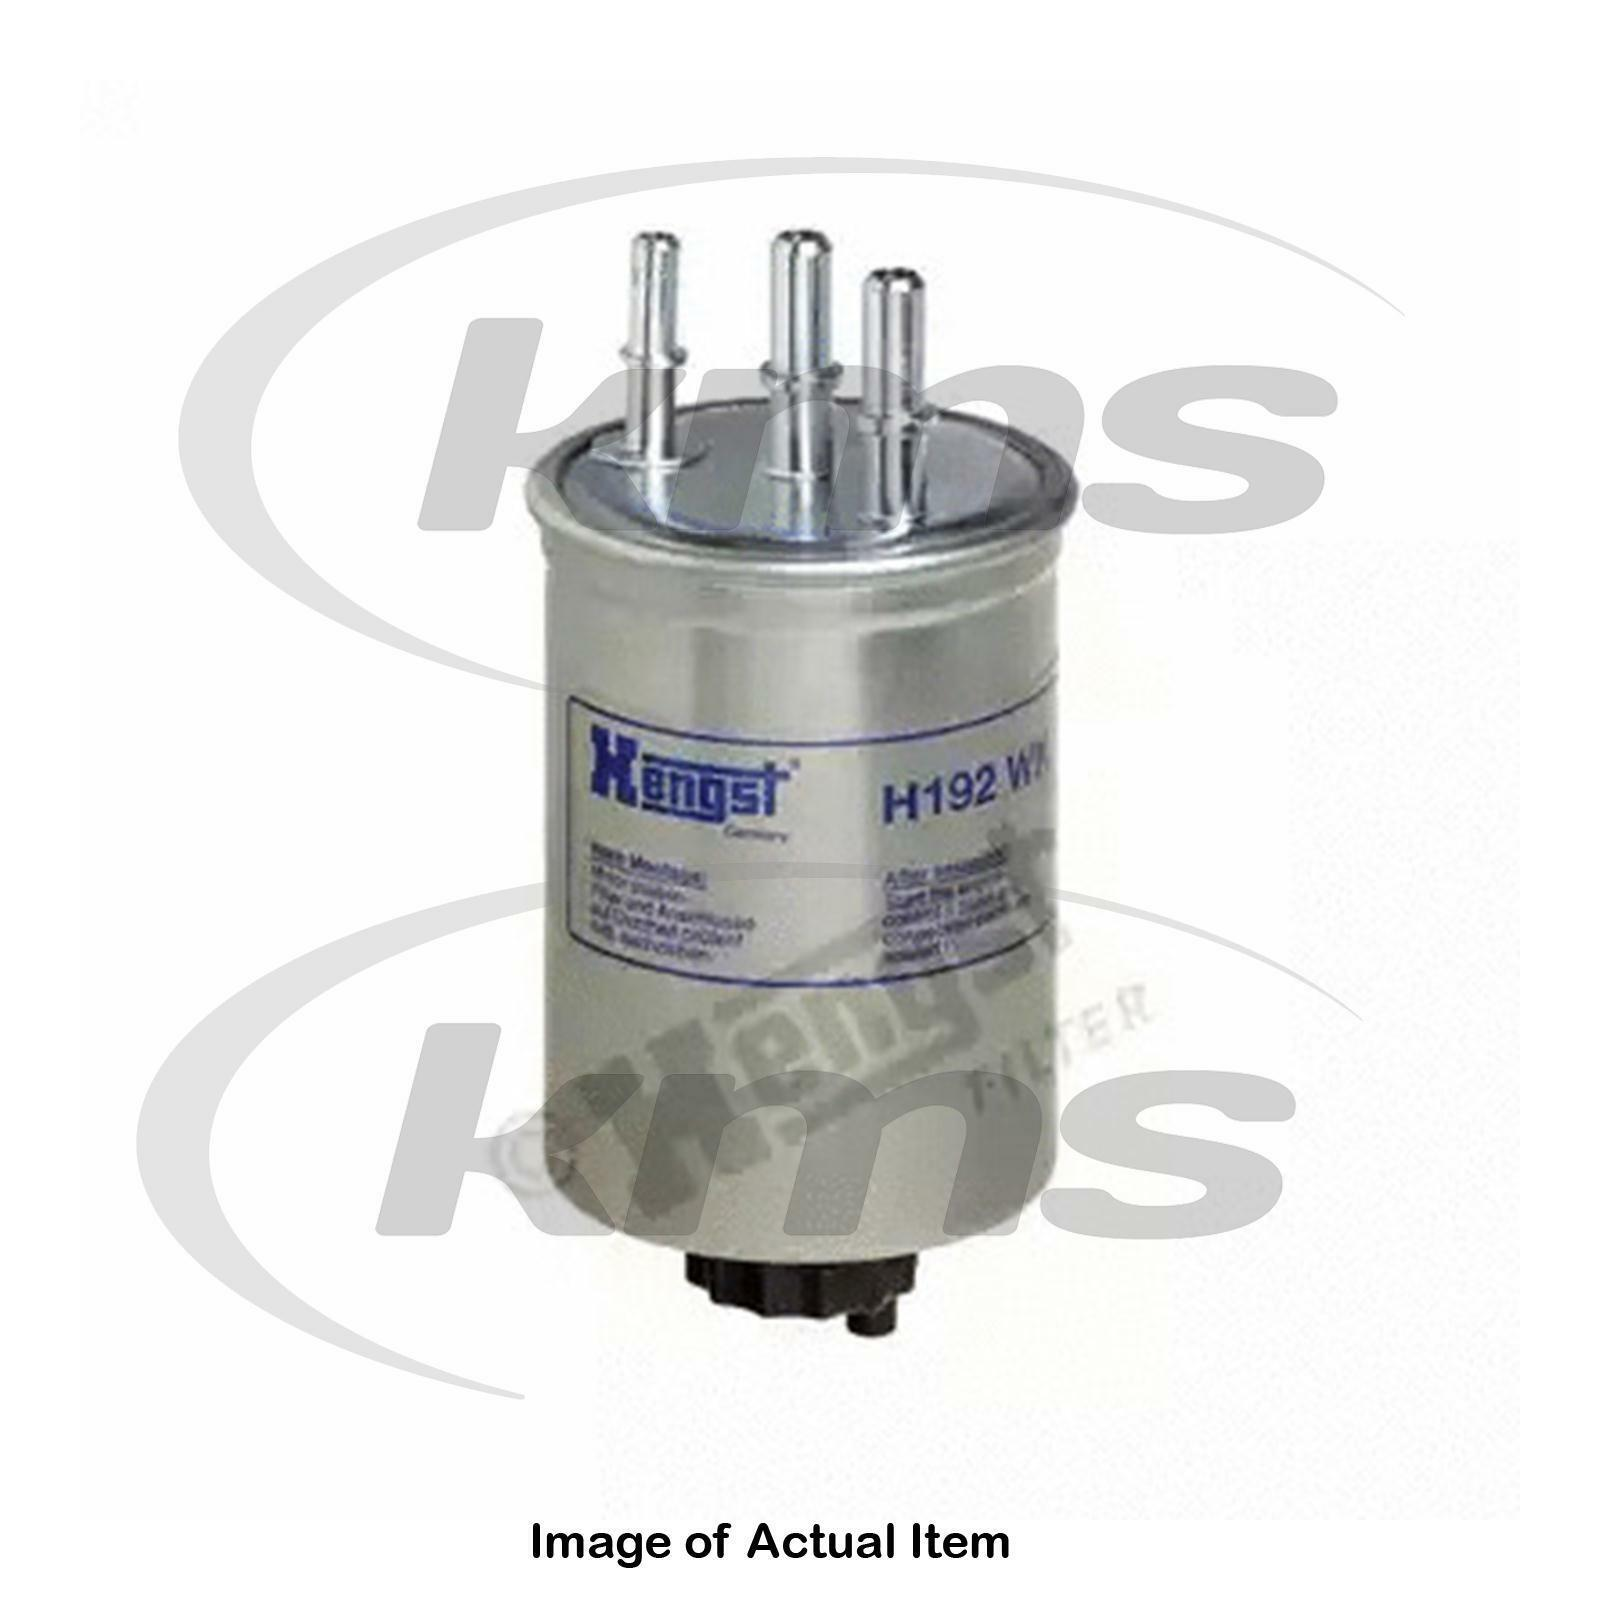 Genuine Hengst Fuel Filter H192wk Top German Quality Ebay Alco Filters Norton Secured Powered By Verisign